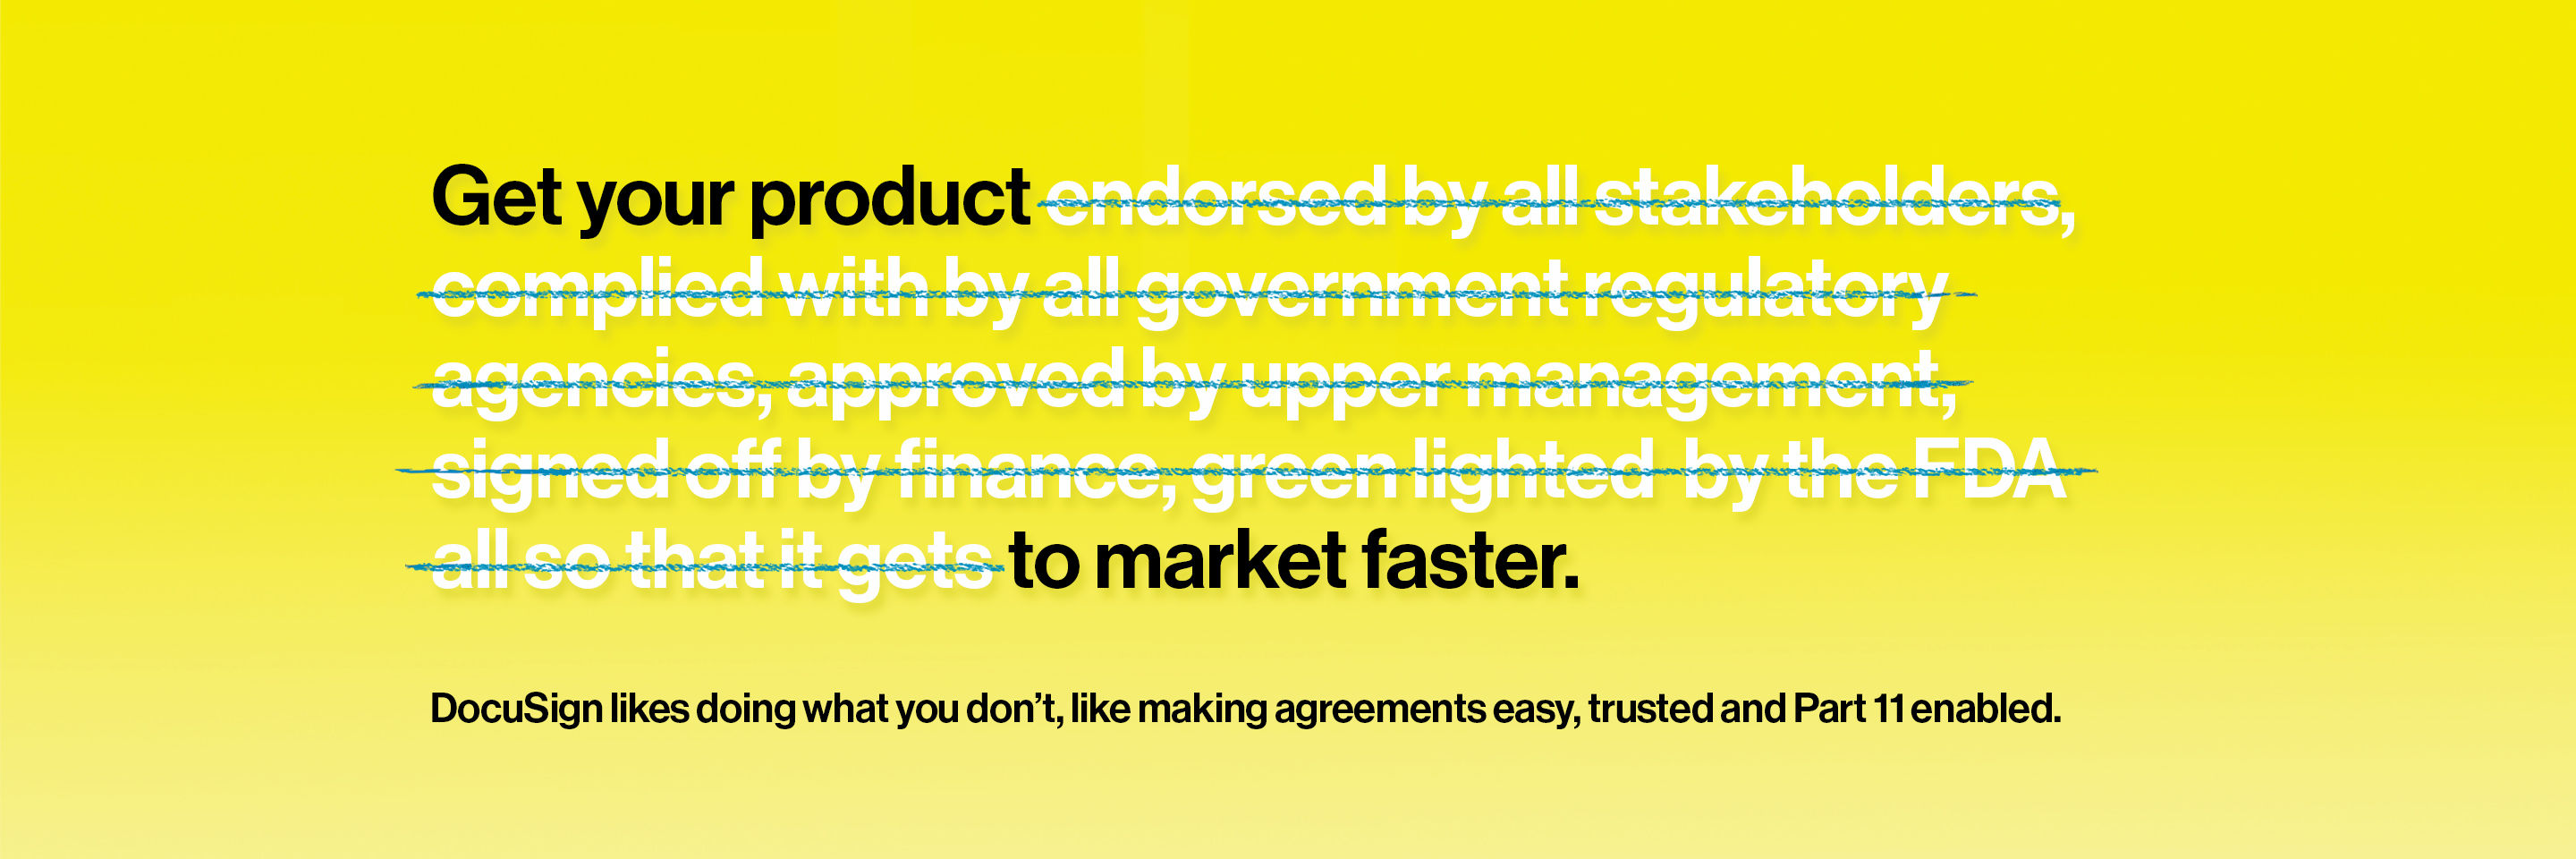 Get your product to market faster. DocuSign likes doing what you don't, like making agreements easy, trusted and Part 11 enabled.